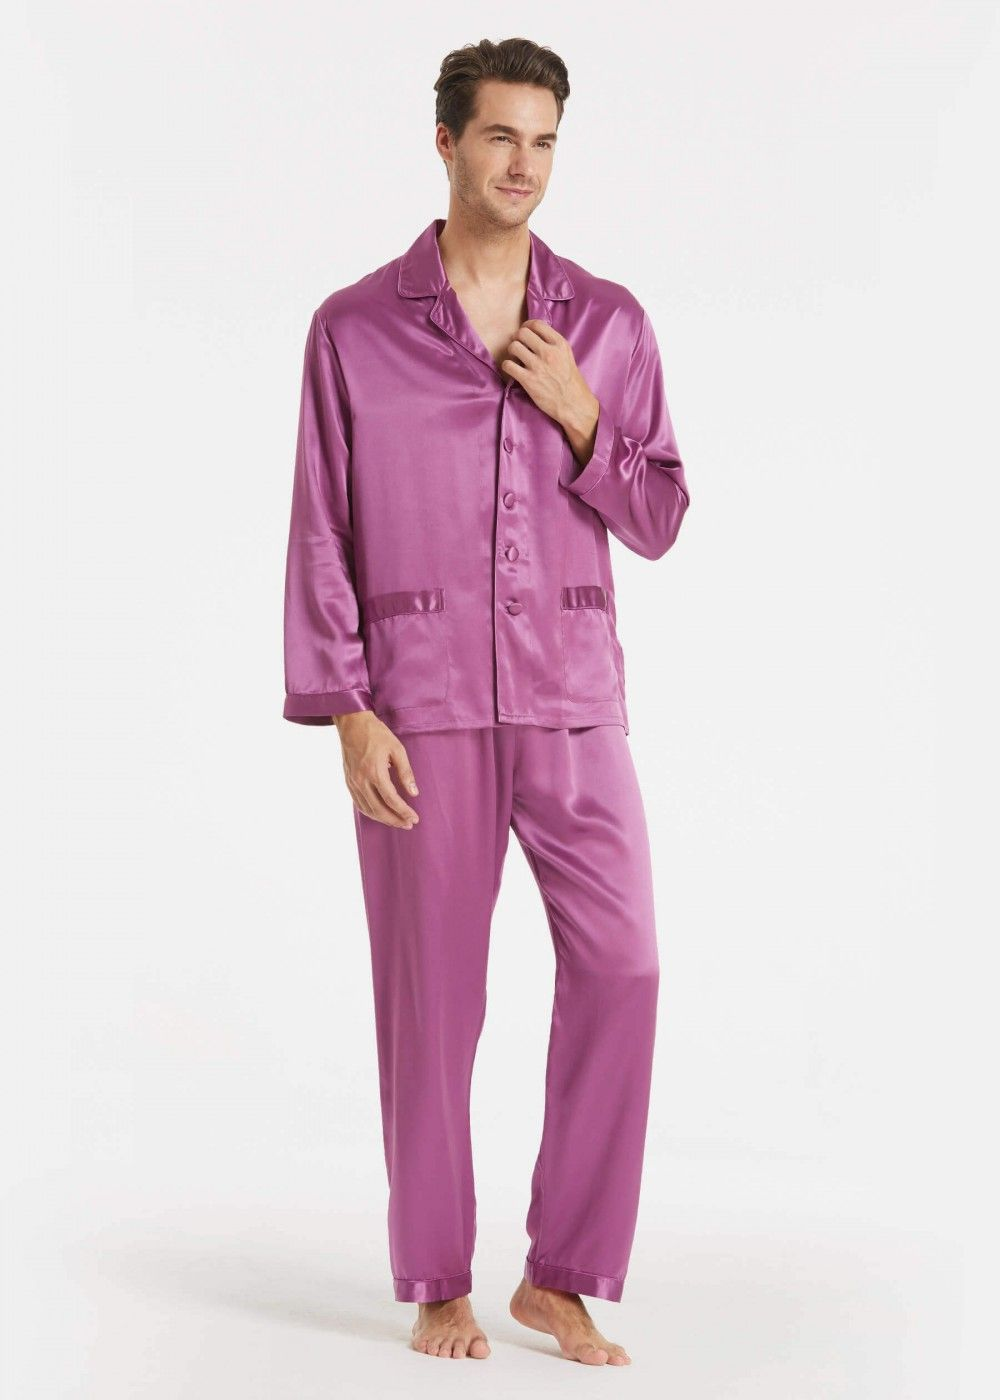 Mens Silk Pajamas Over Cotton And Flannel